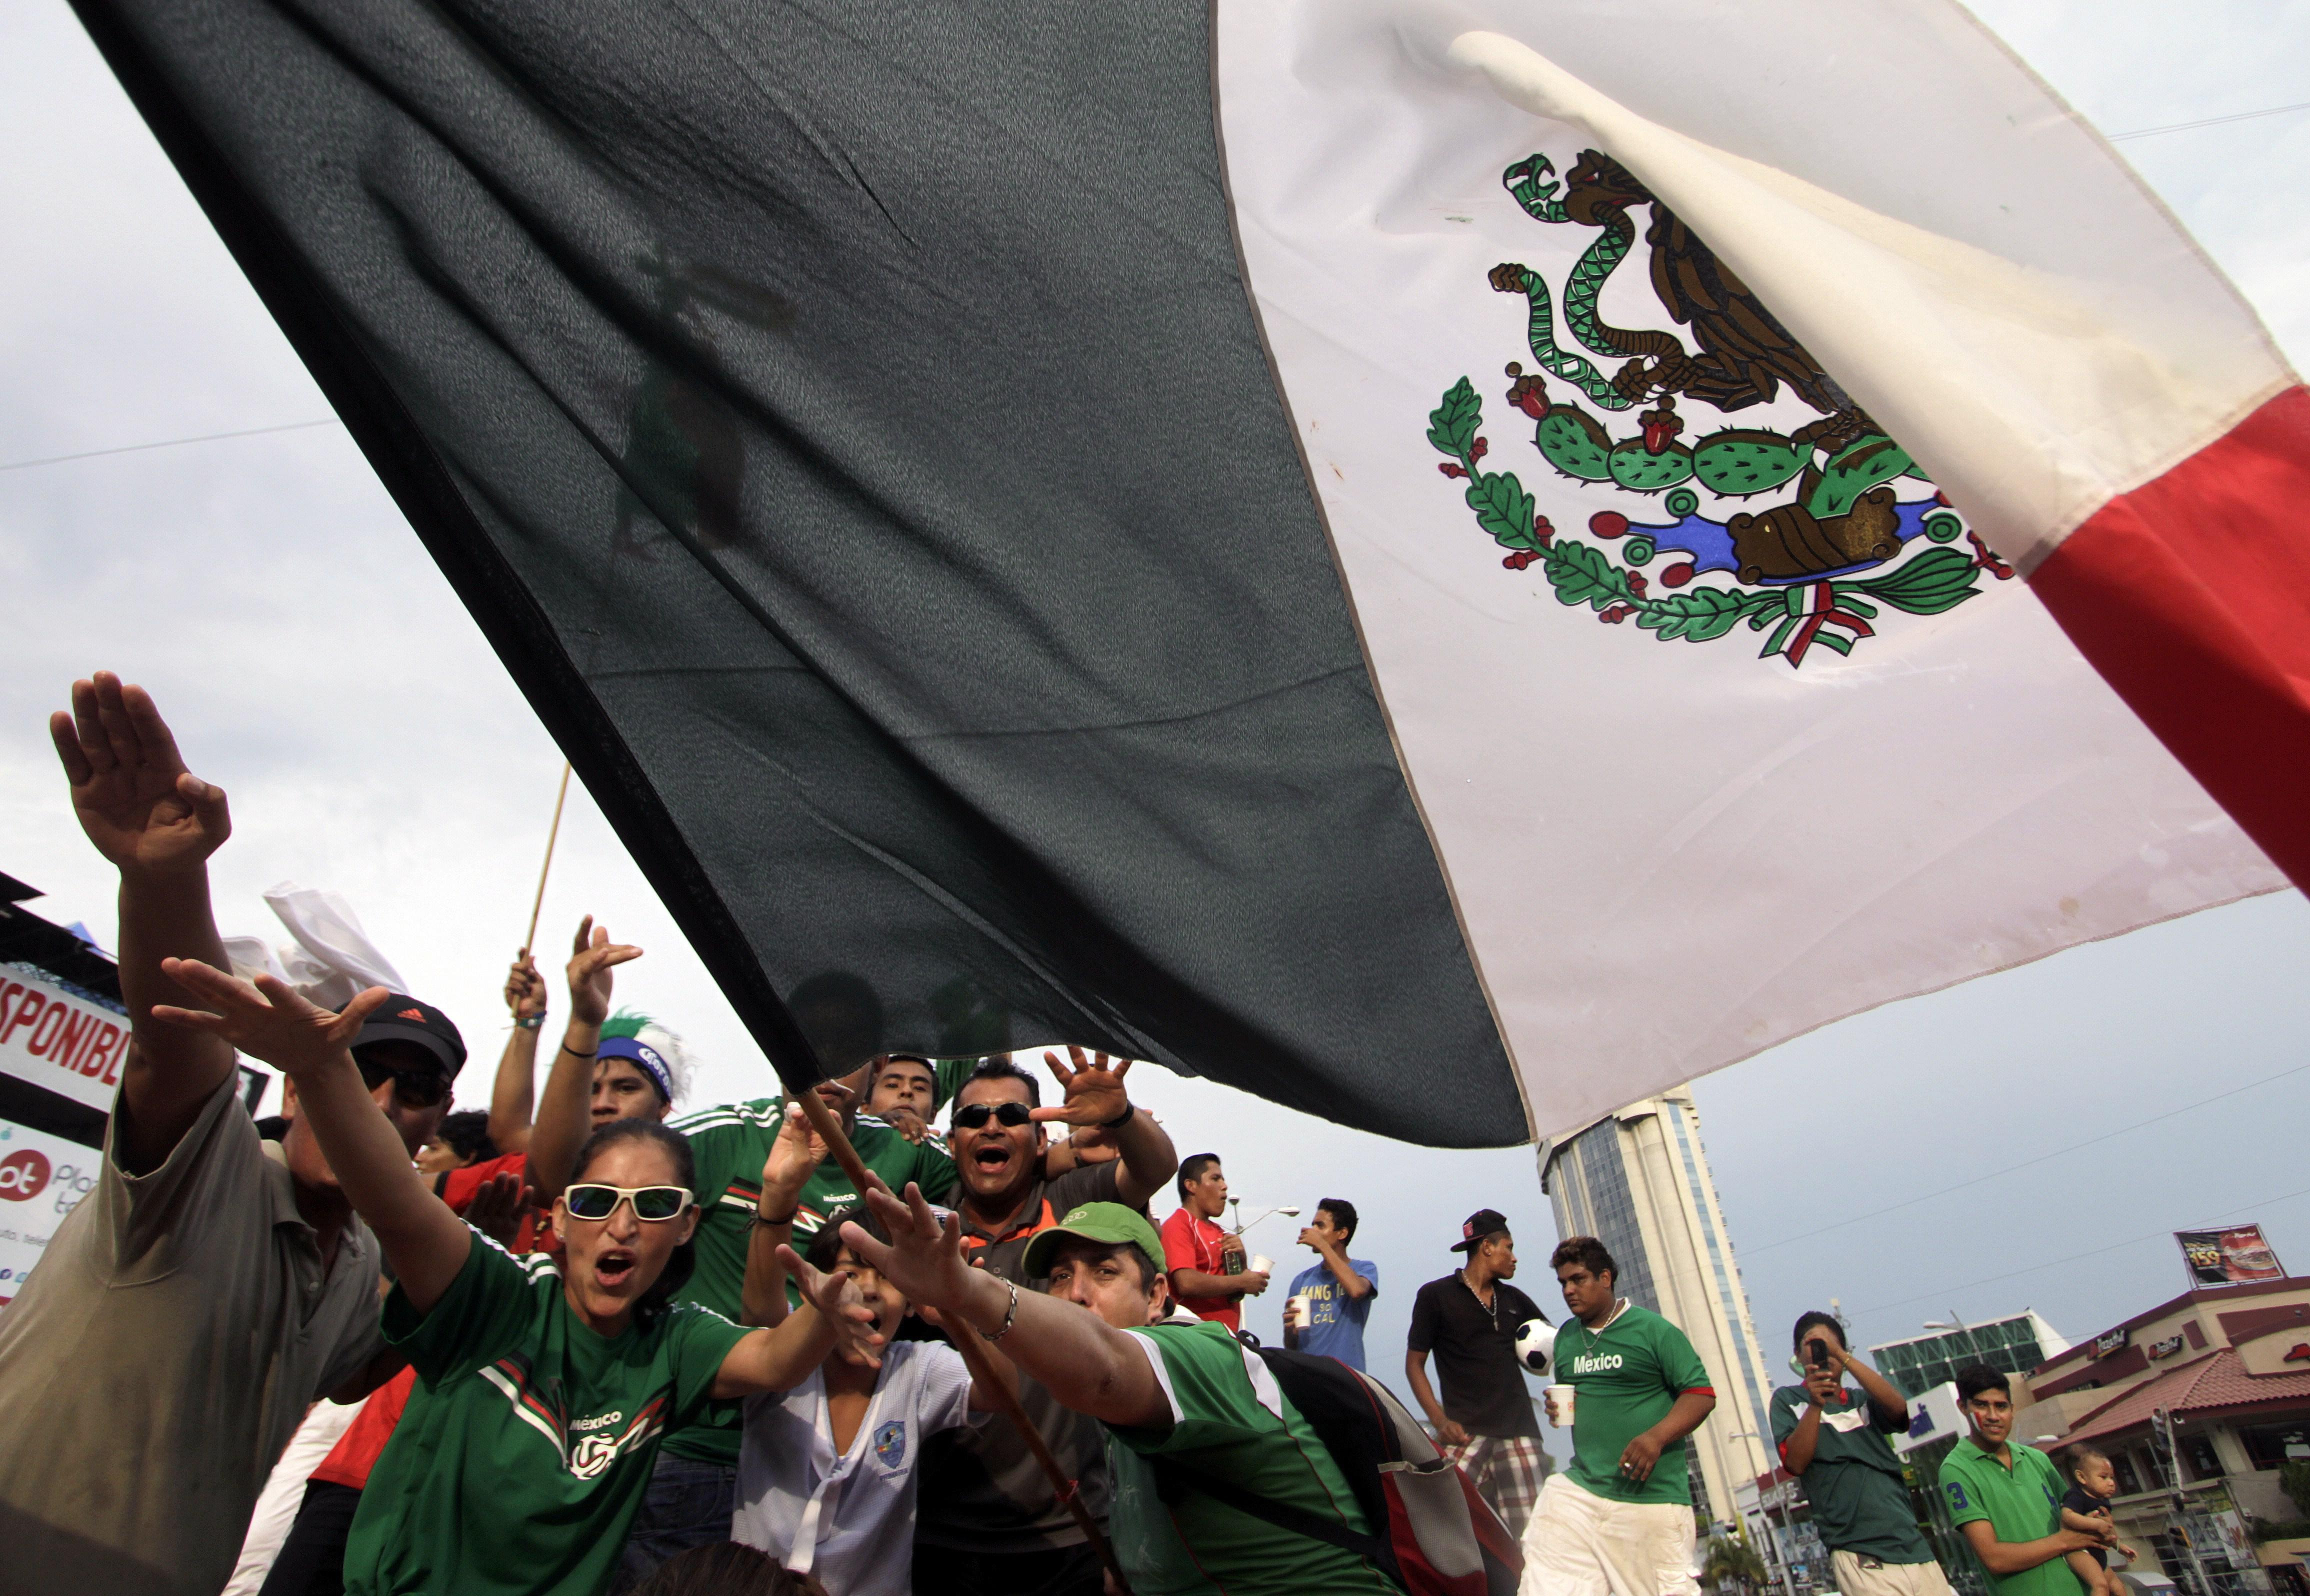 Mexican Fans Celebrate After The Mexico Vs Croatia Fifa World Cup Match